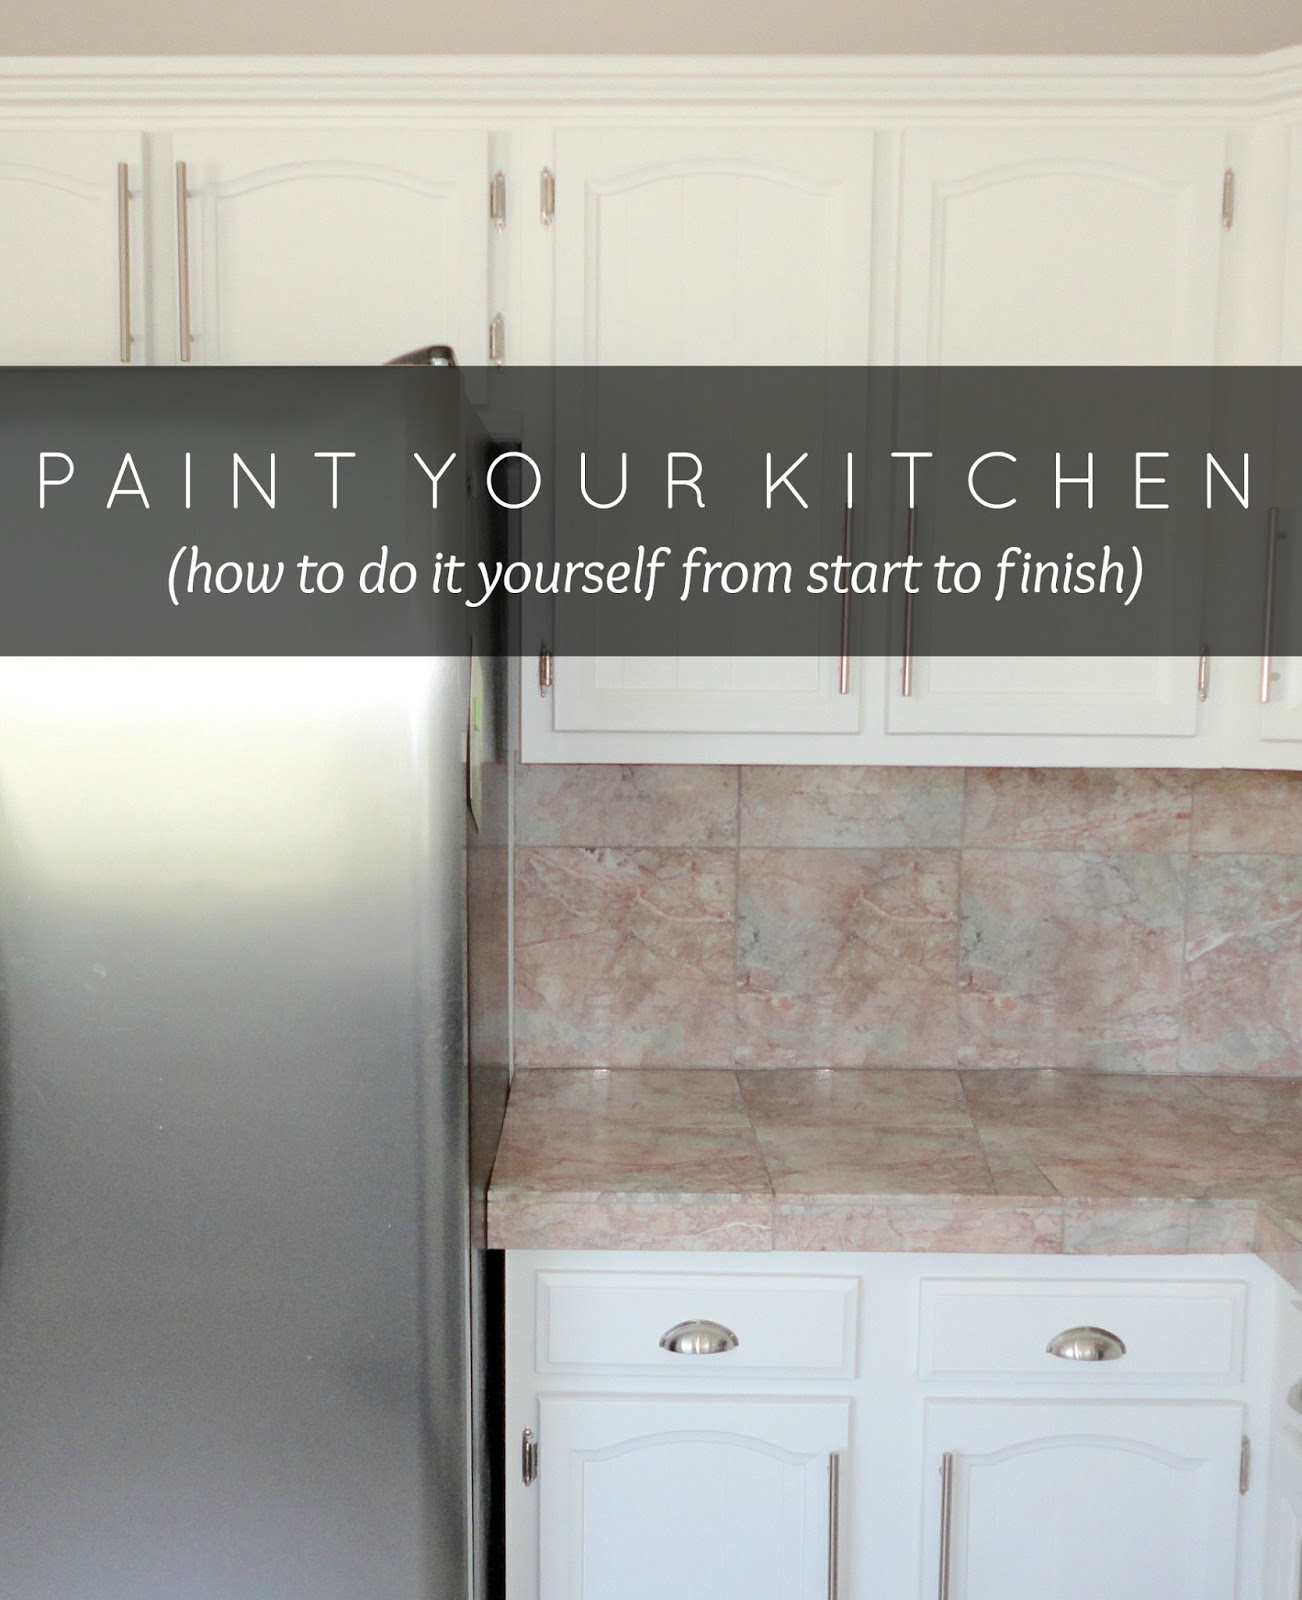 10 easy steps to paint kitchen cabinets painting kitchen cabinets How To Paint Kitchen Cabinets in 10 Easy Steps